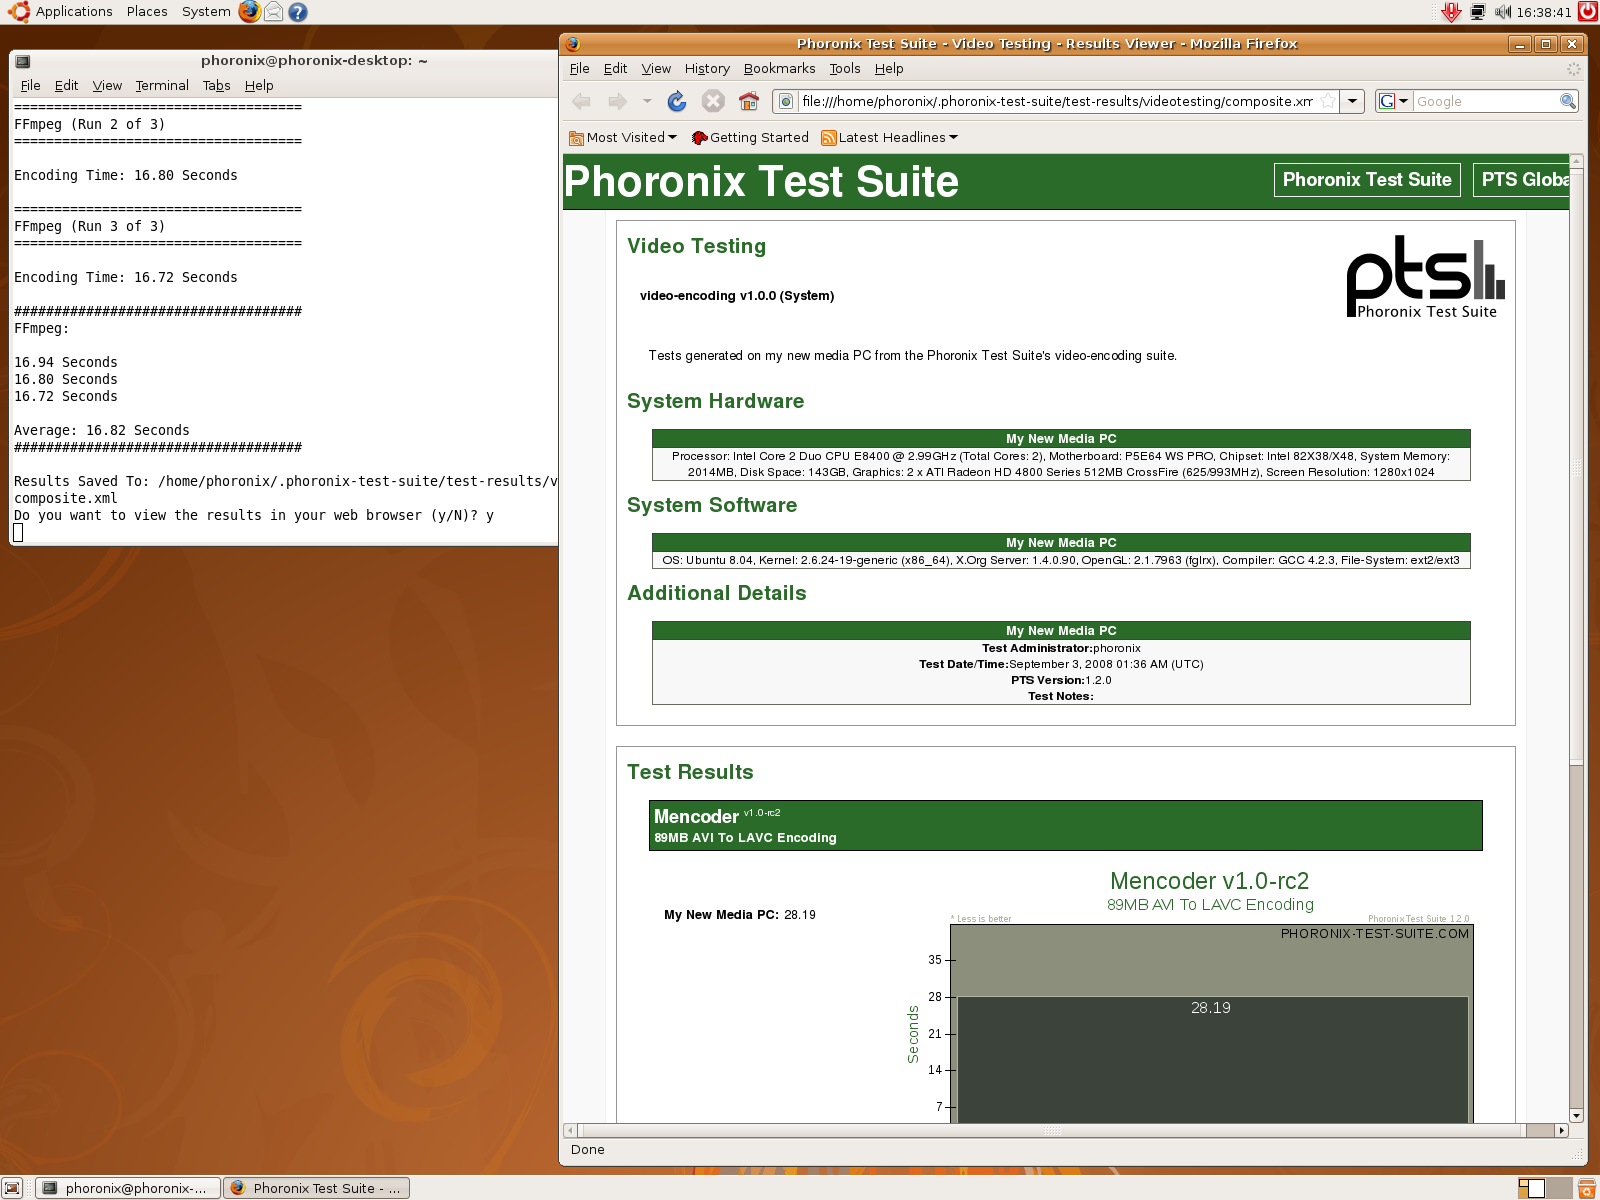 http://www.phoronix-test-suite.com/screenshots/pts-malvik-2.png